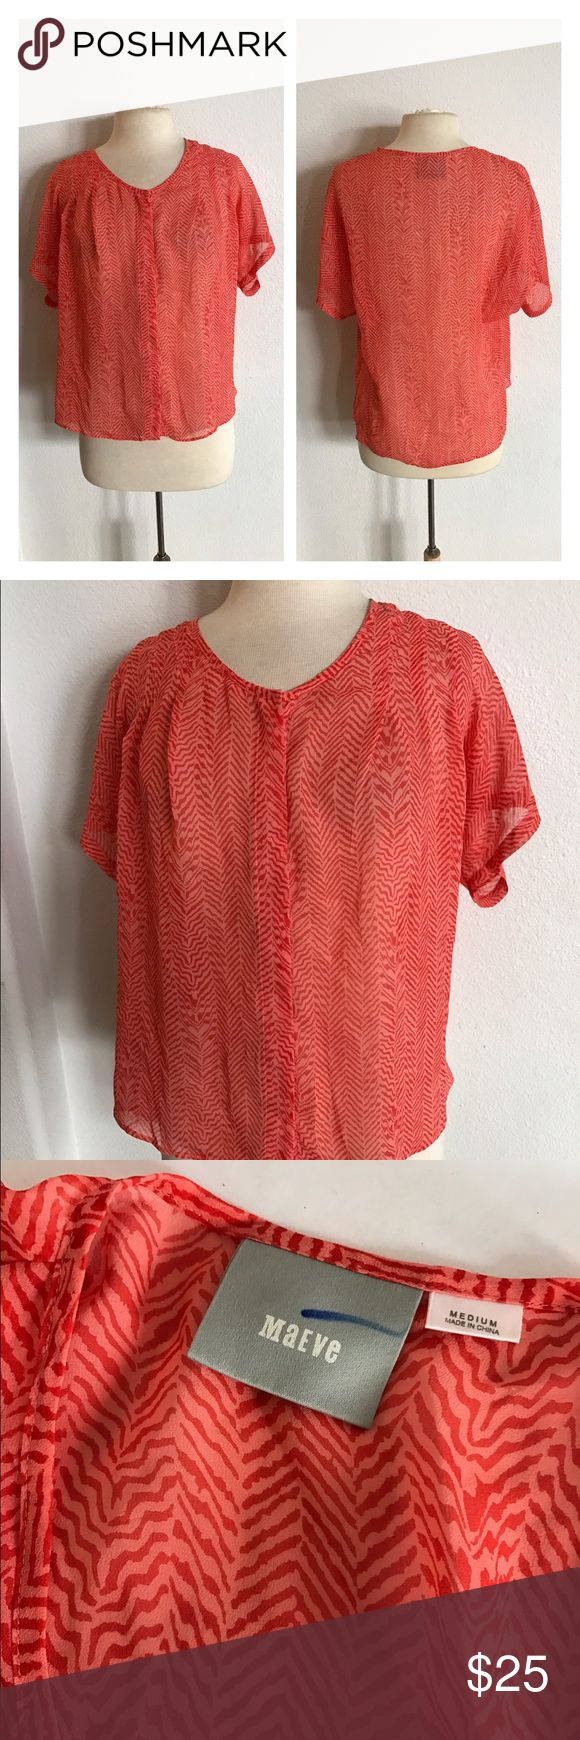 "Maeve chevron Blouse Maeve chevron blouse. Size M. Measures 26"" long with a 38"" bust. Pink/ orange colors. Hidden buttons down the front. This is completely sheer. Material tag has been removed. Very great used condition.  🚫NO TRADES 💲Reasonable offers accepted 💰Ask about bundle discounts Anthropologie Tops Blouses"